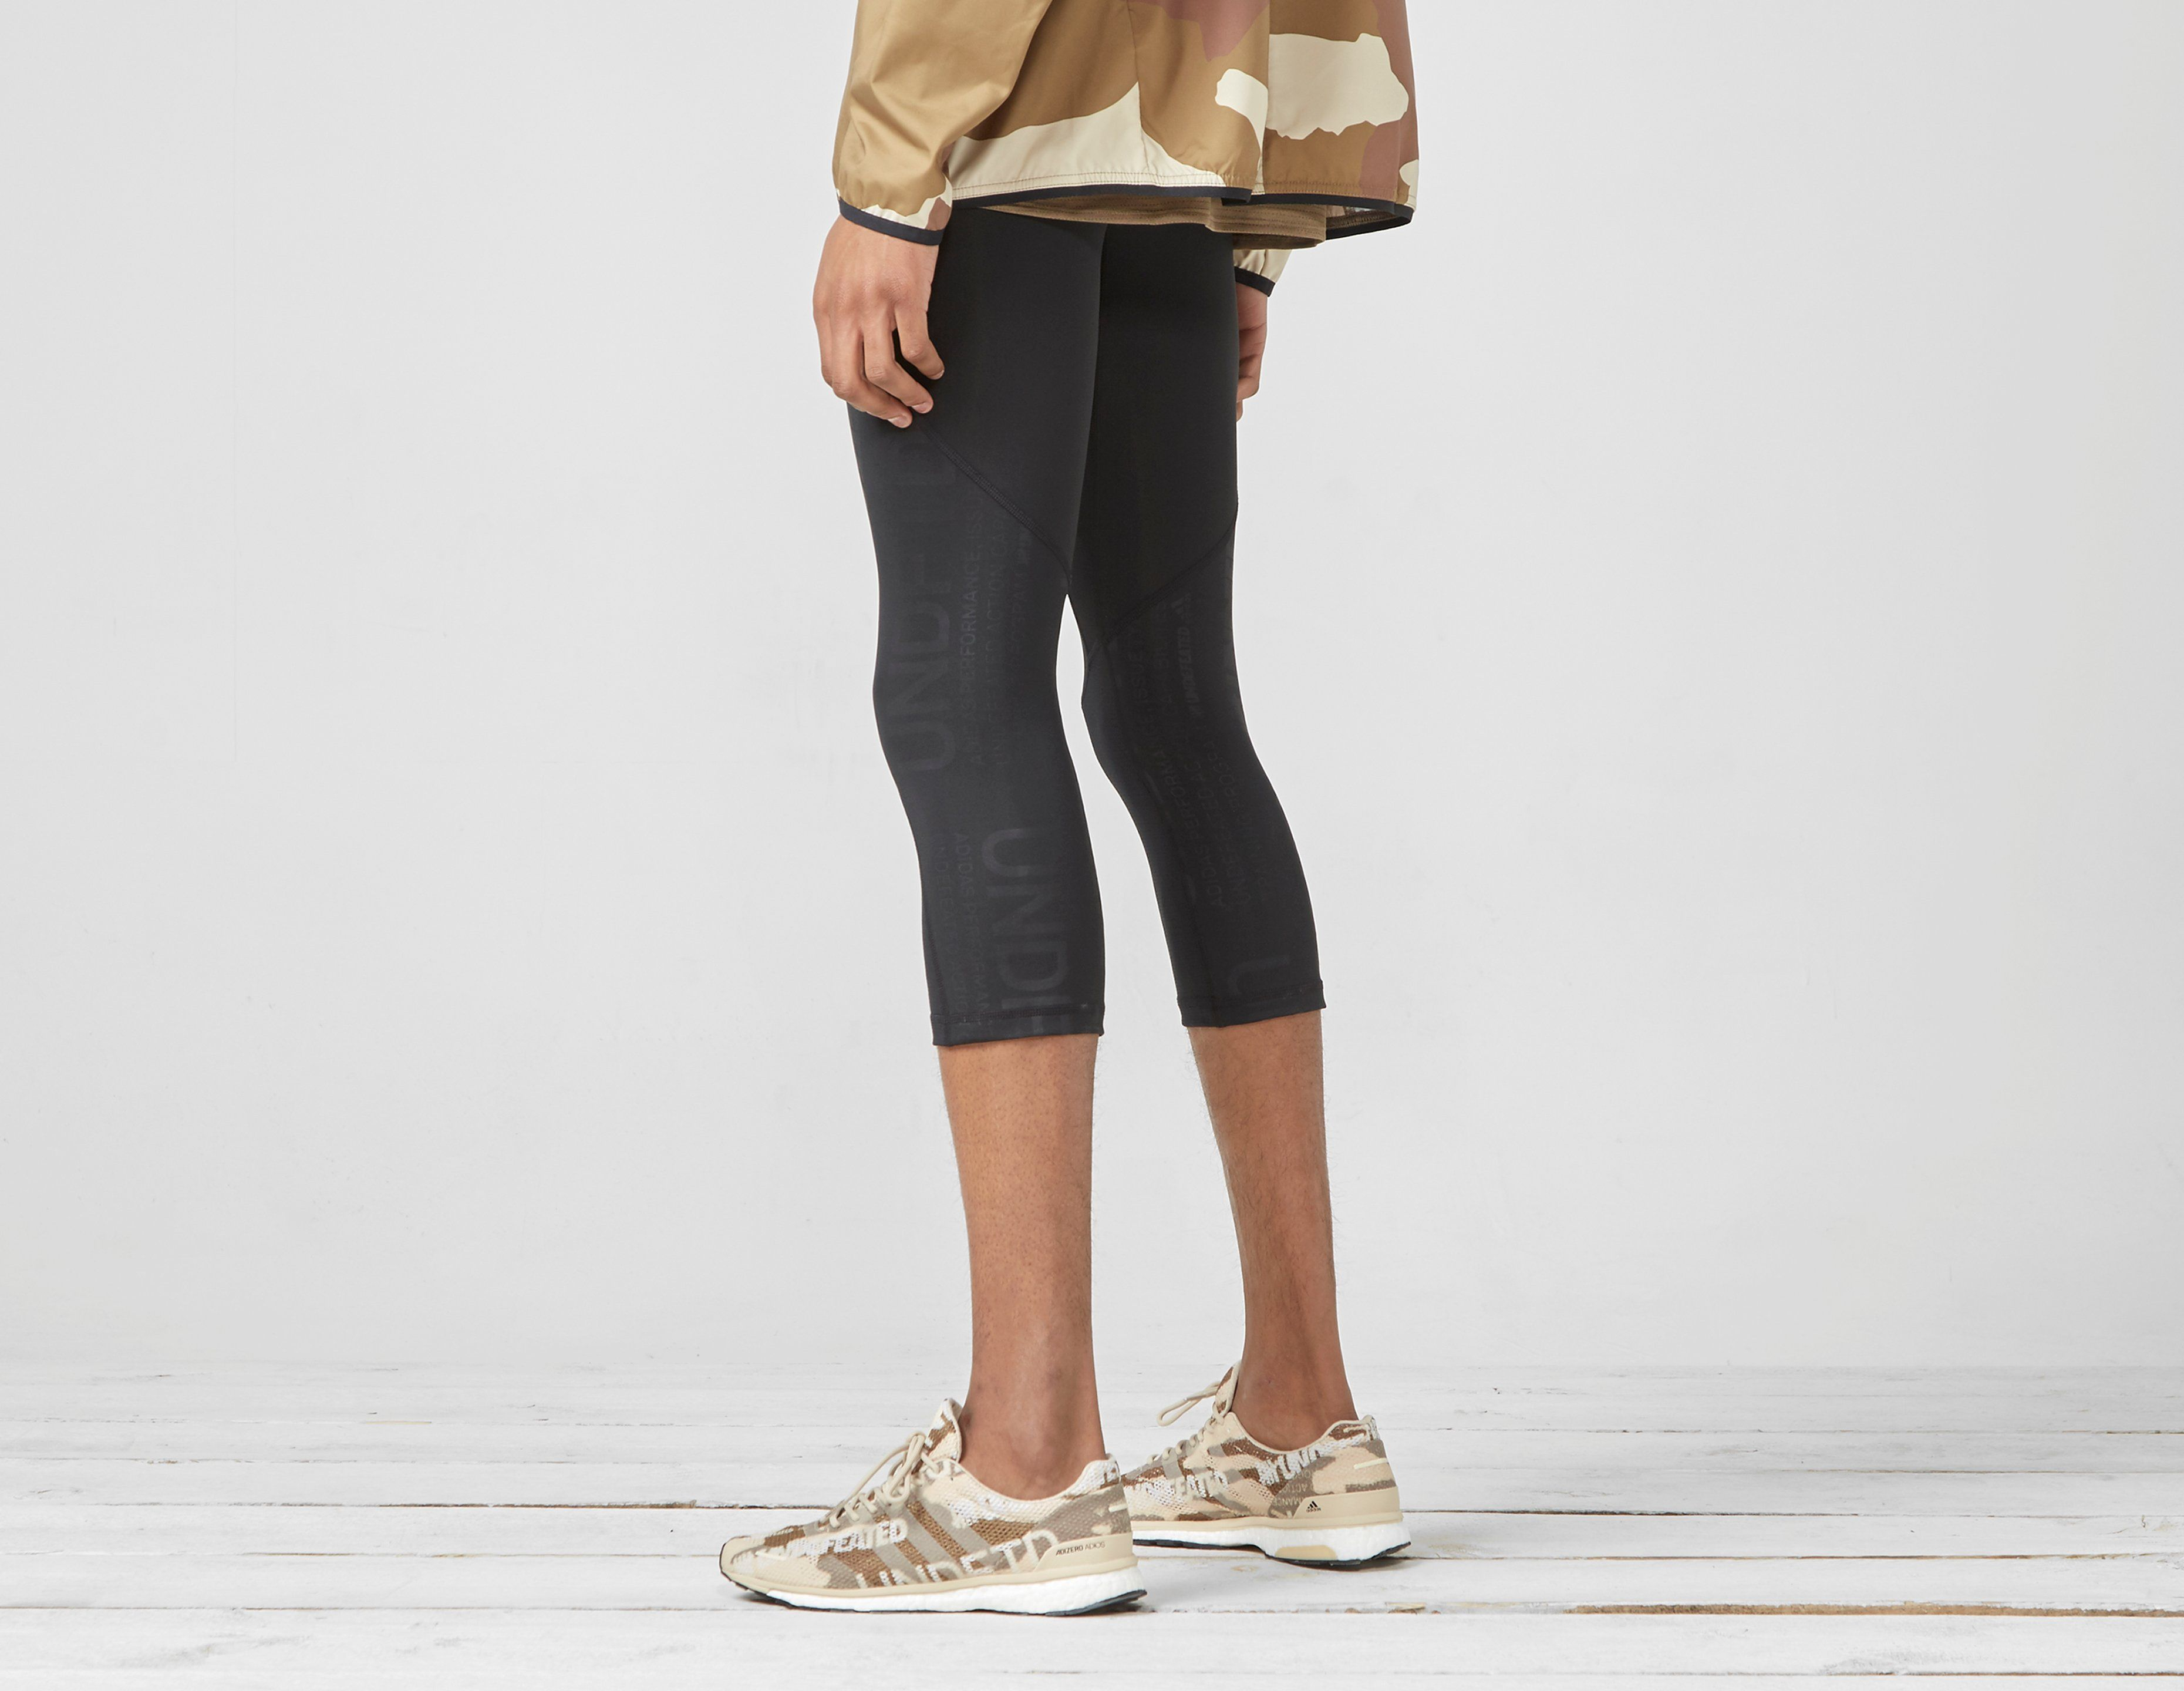 adidas x UNDEFEATED 3/4 ASK Tech Tight